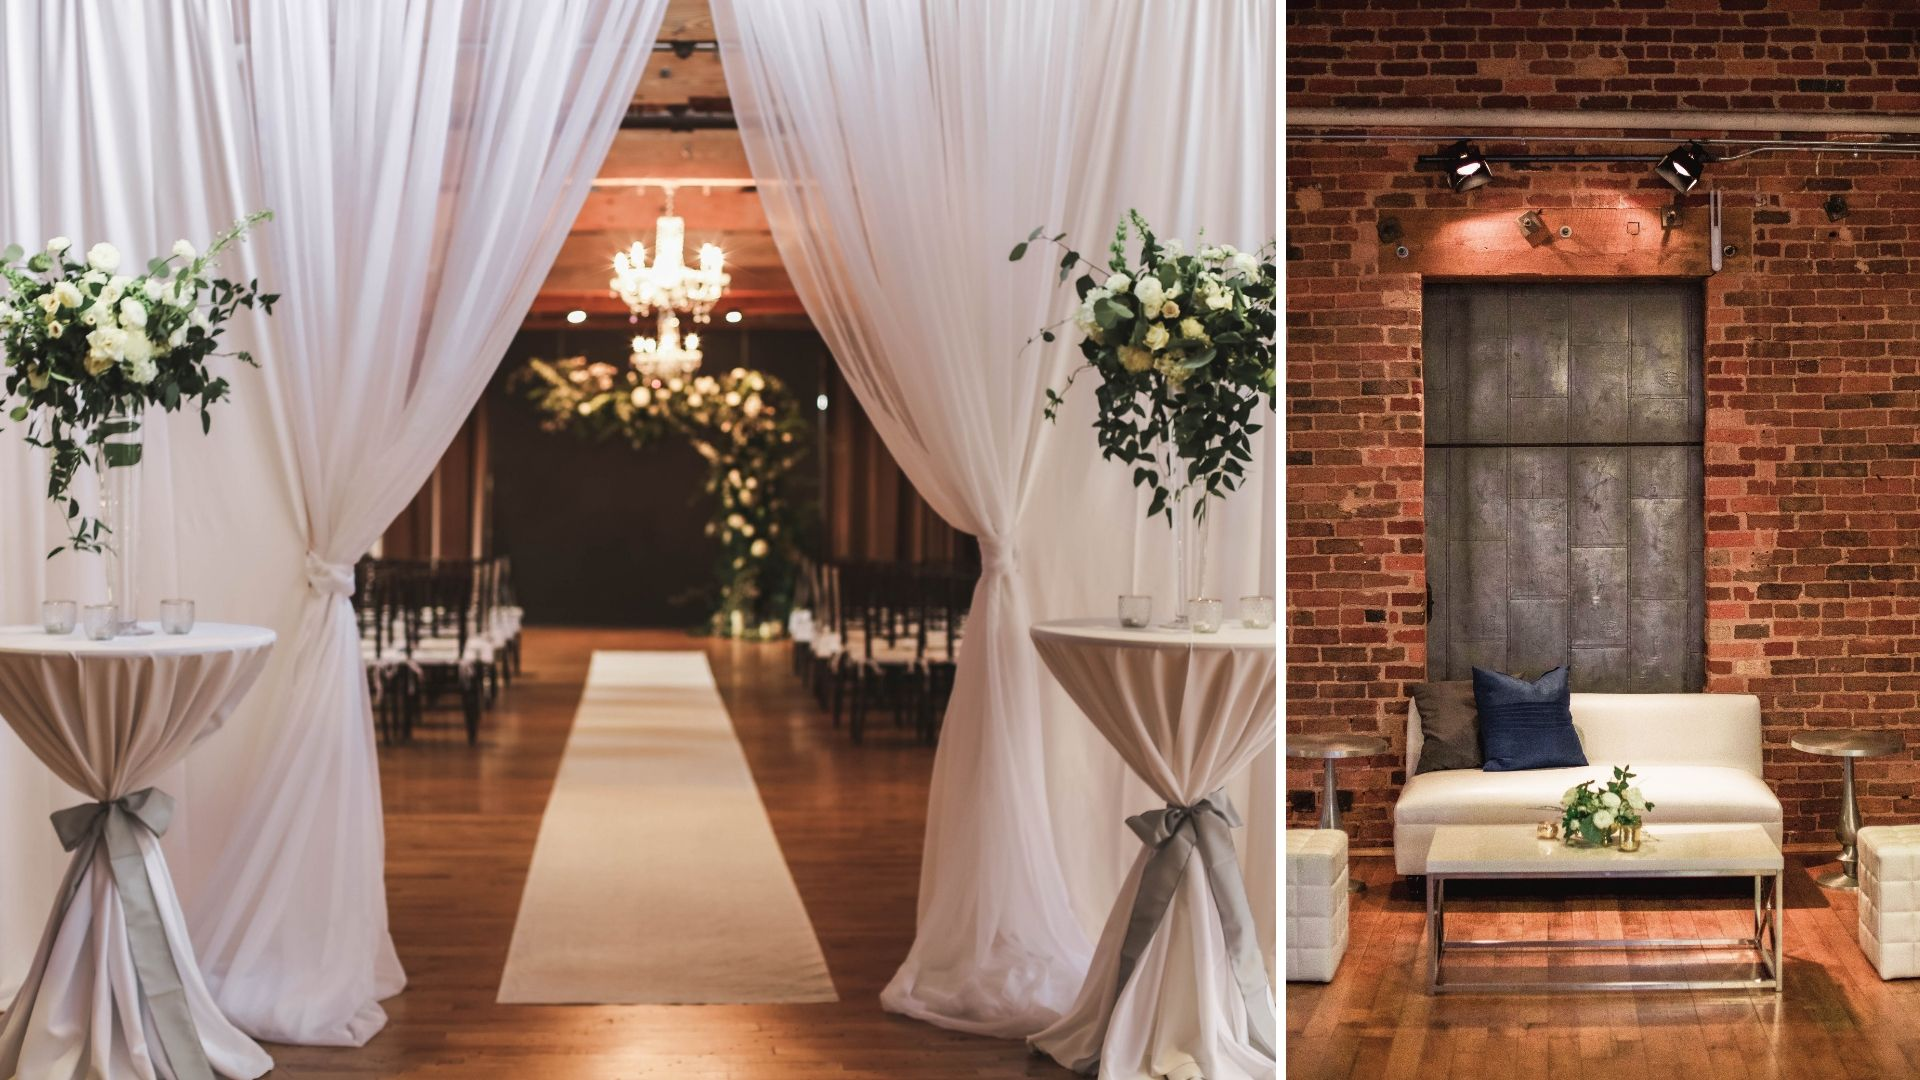 6 Amazing Wedding Venues In Greenville Sc The Upstate Upstate Wedding Wedding Venues Venues